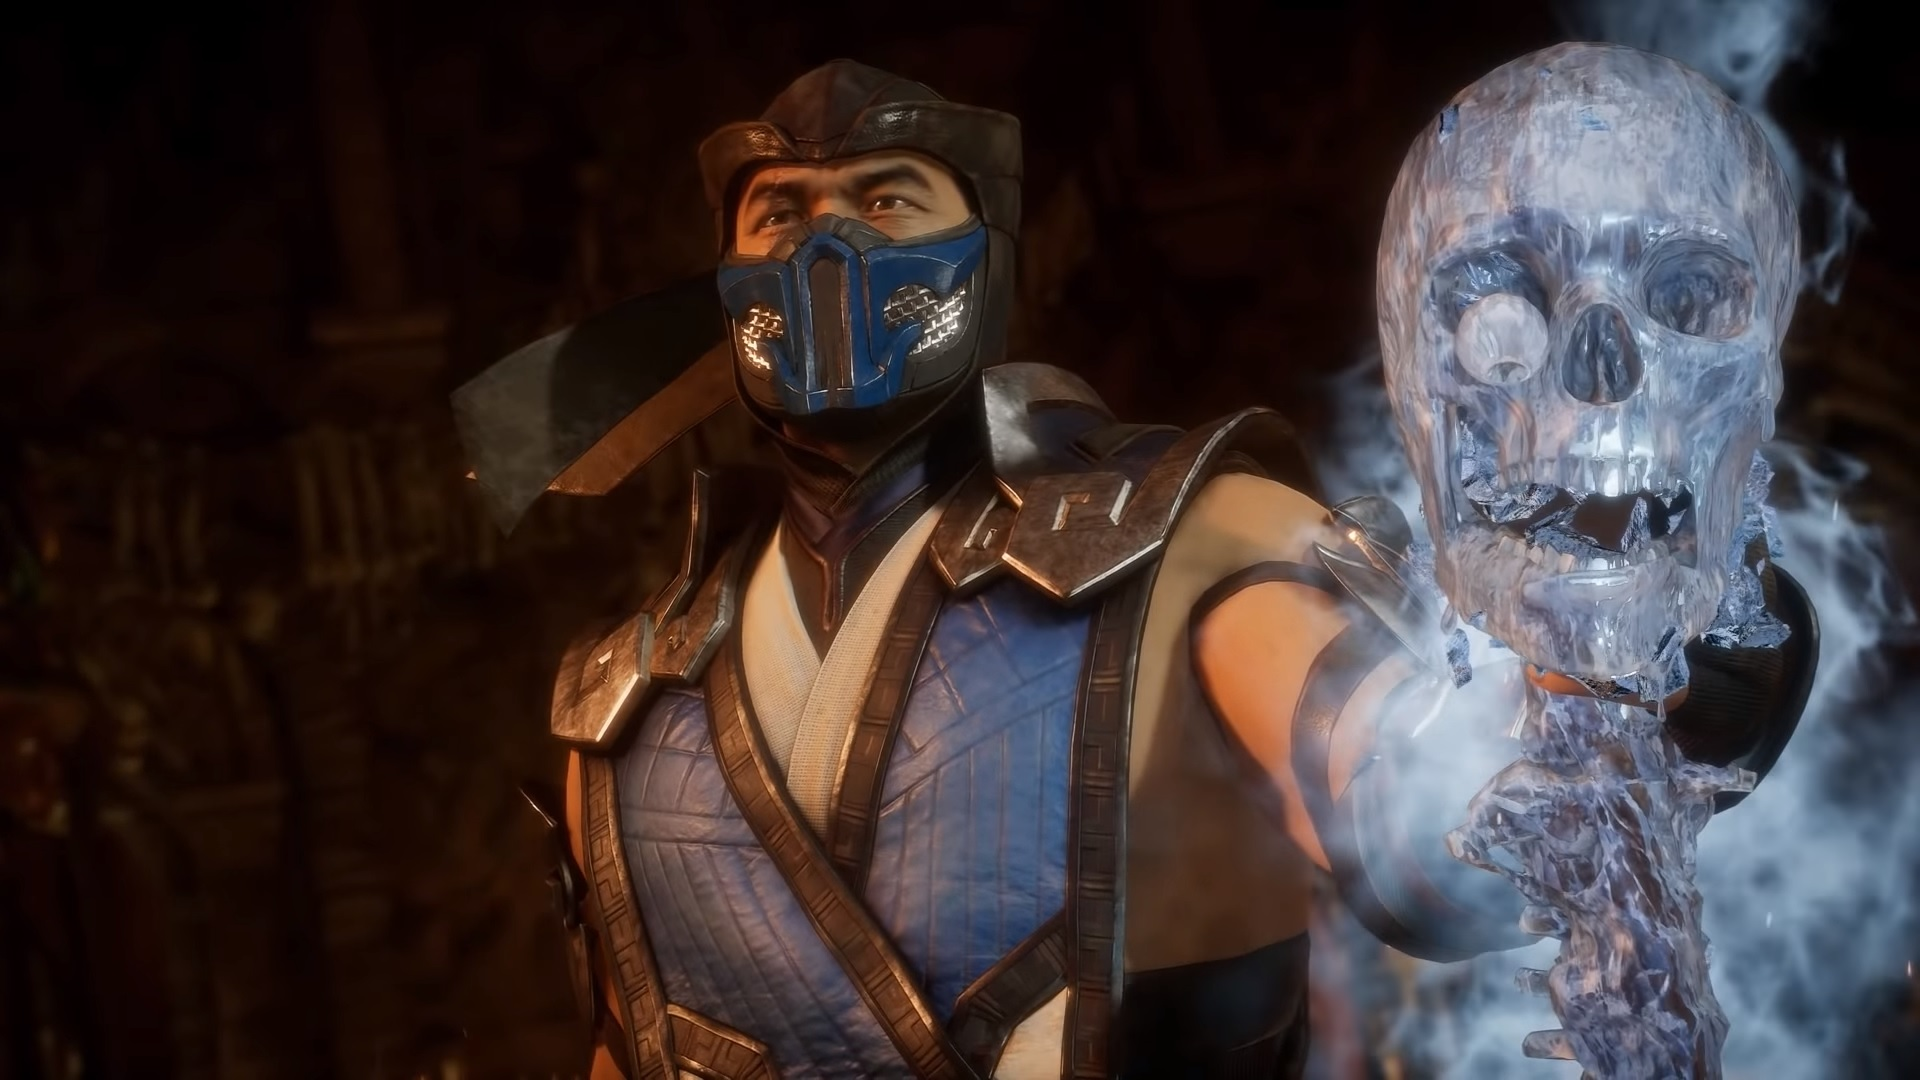 Sub Zero Mortal Kombat 11 Fatalities Guide Inputs List Videos